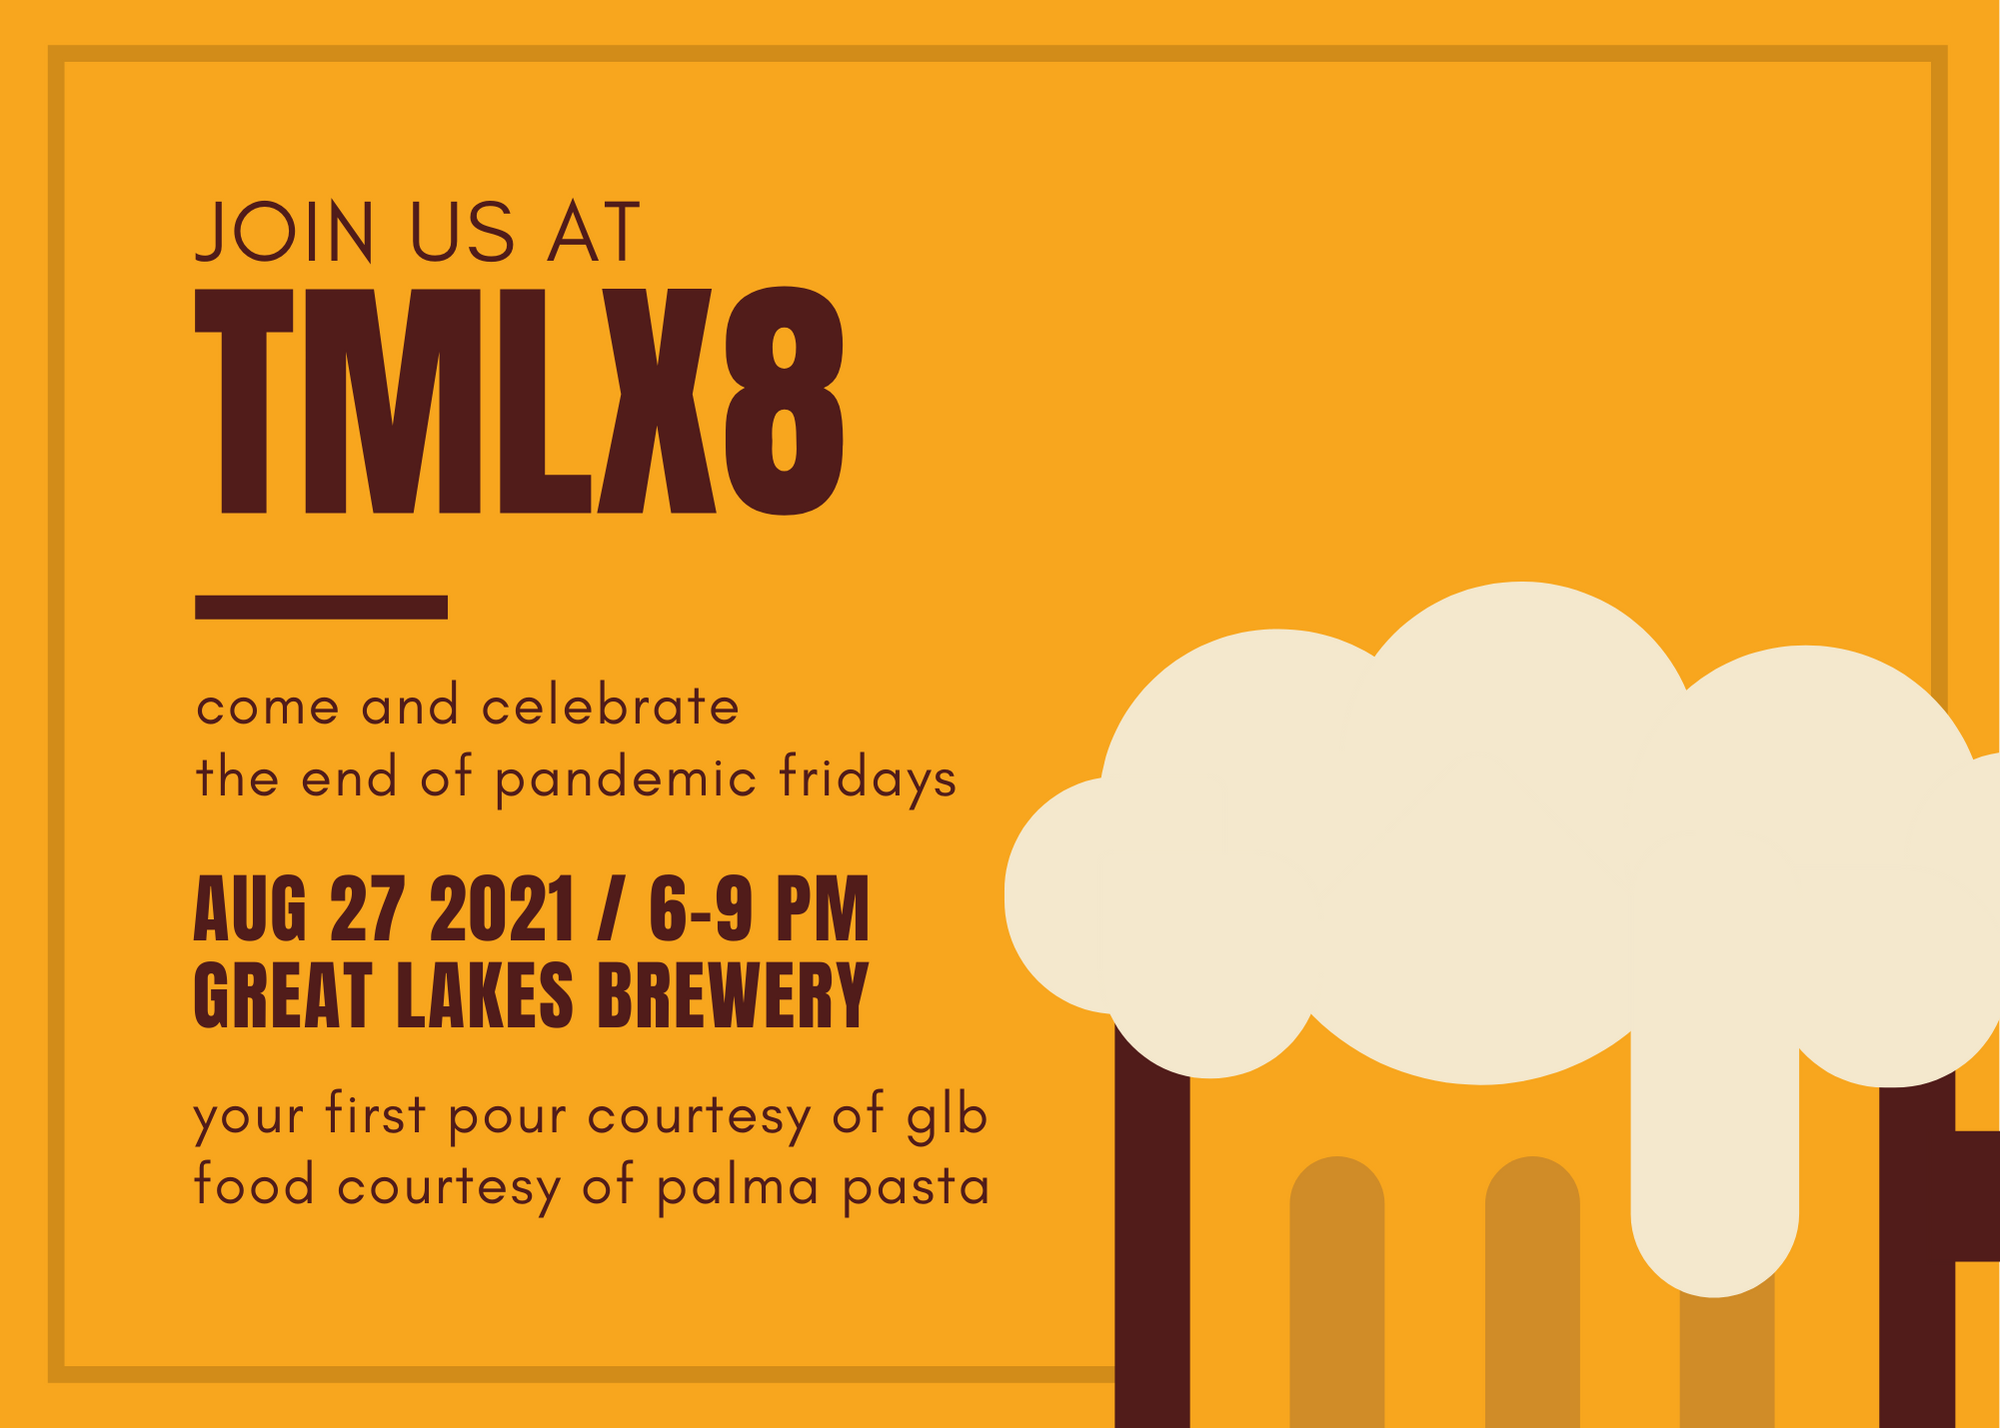 Join Us At #TMLX8 on August 27, 2021